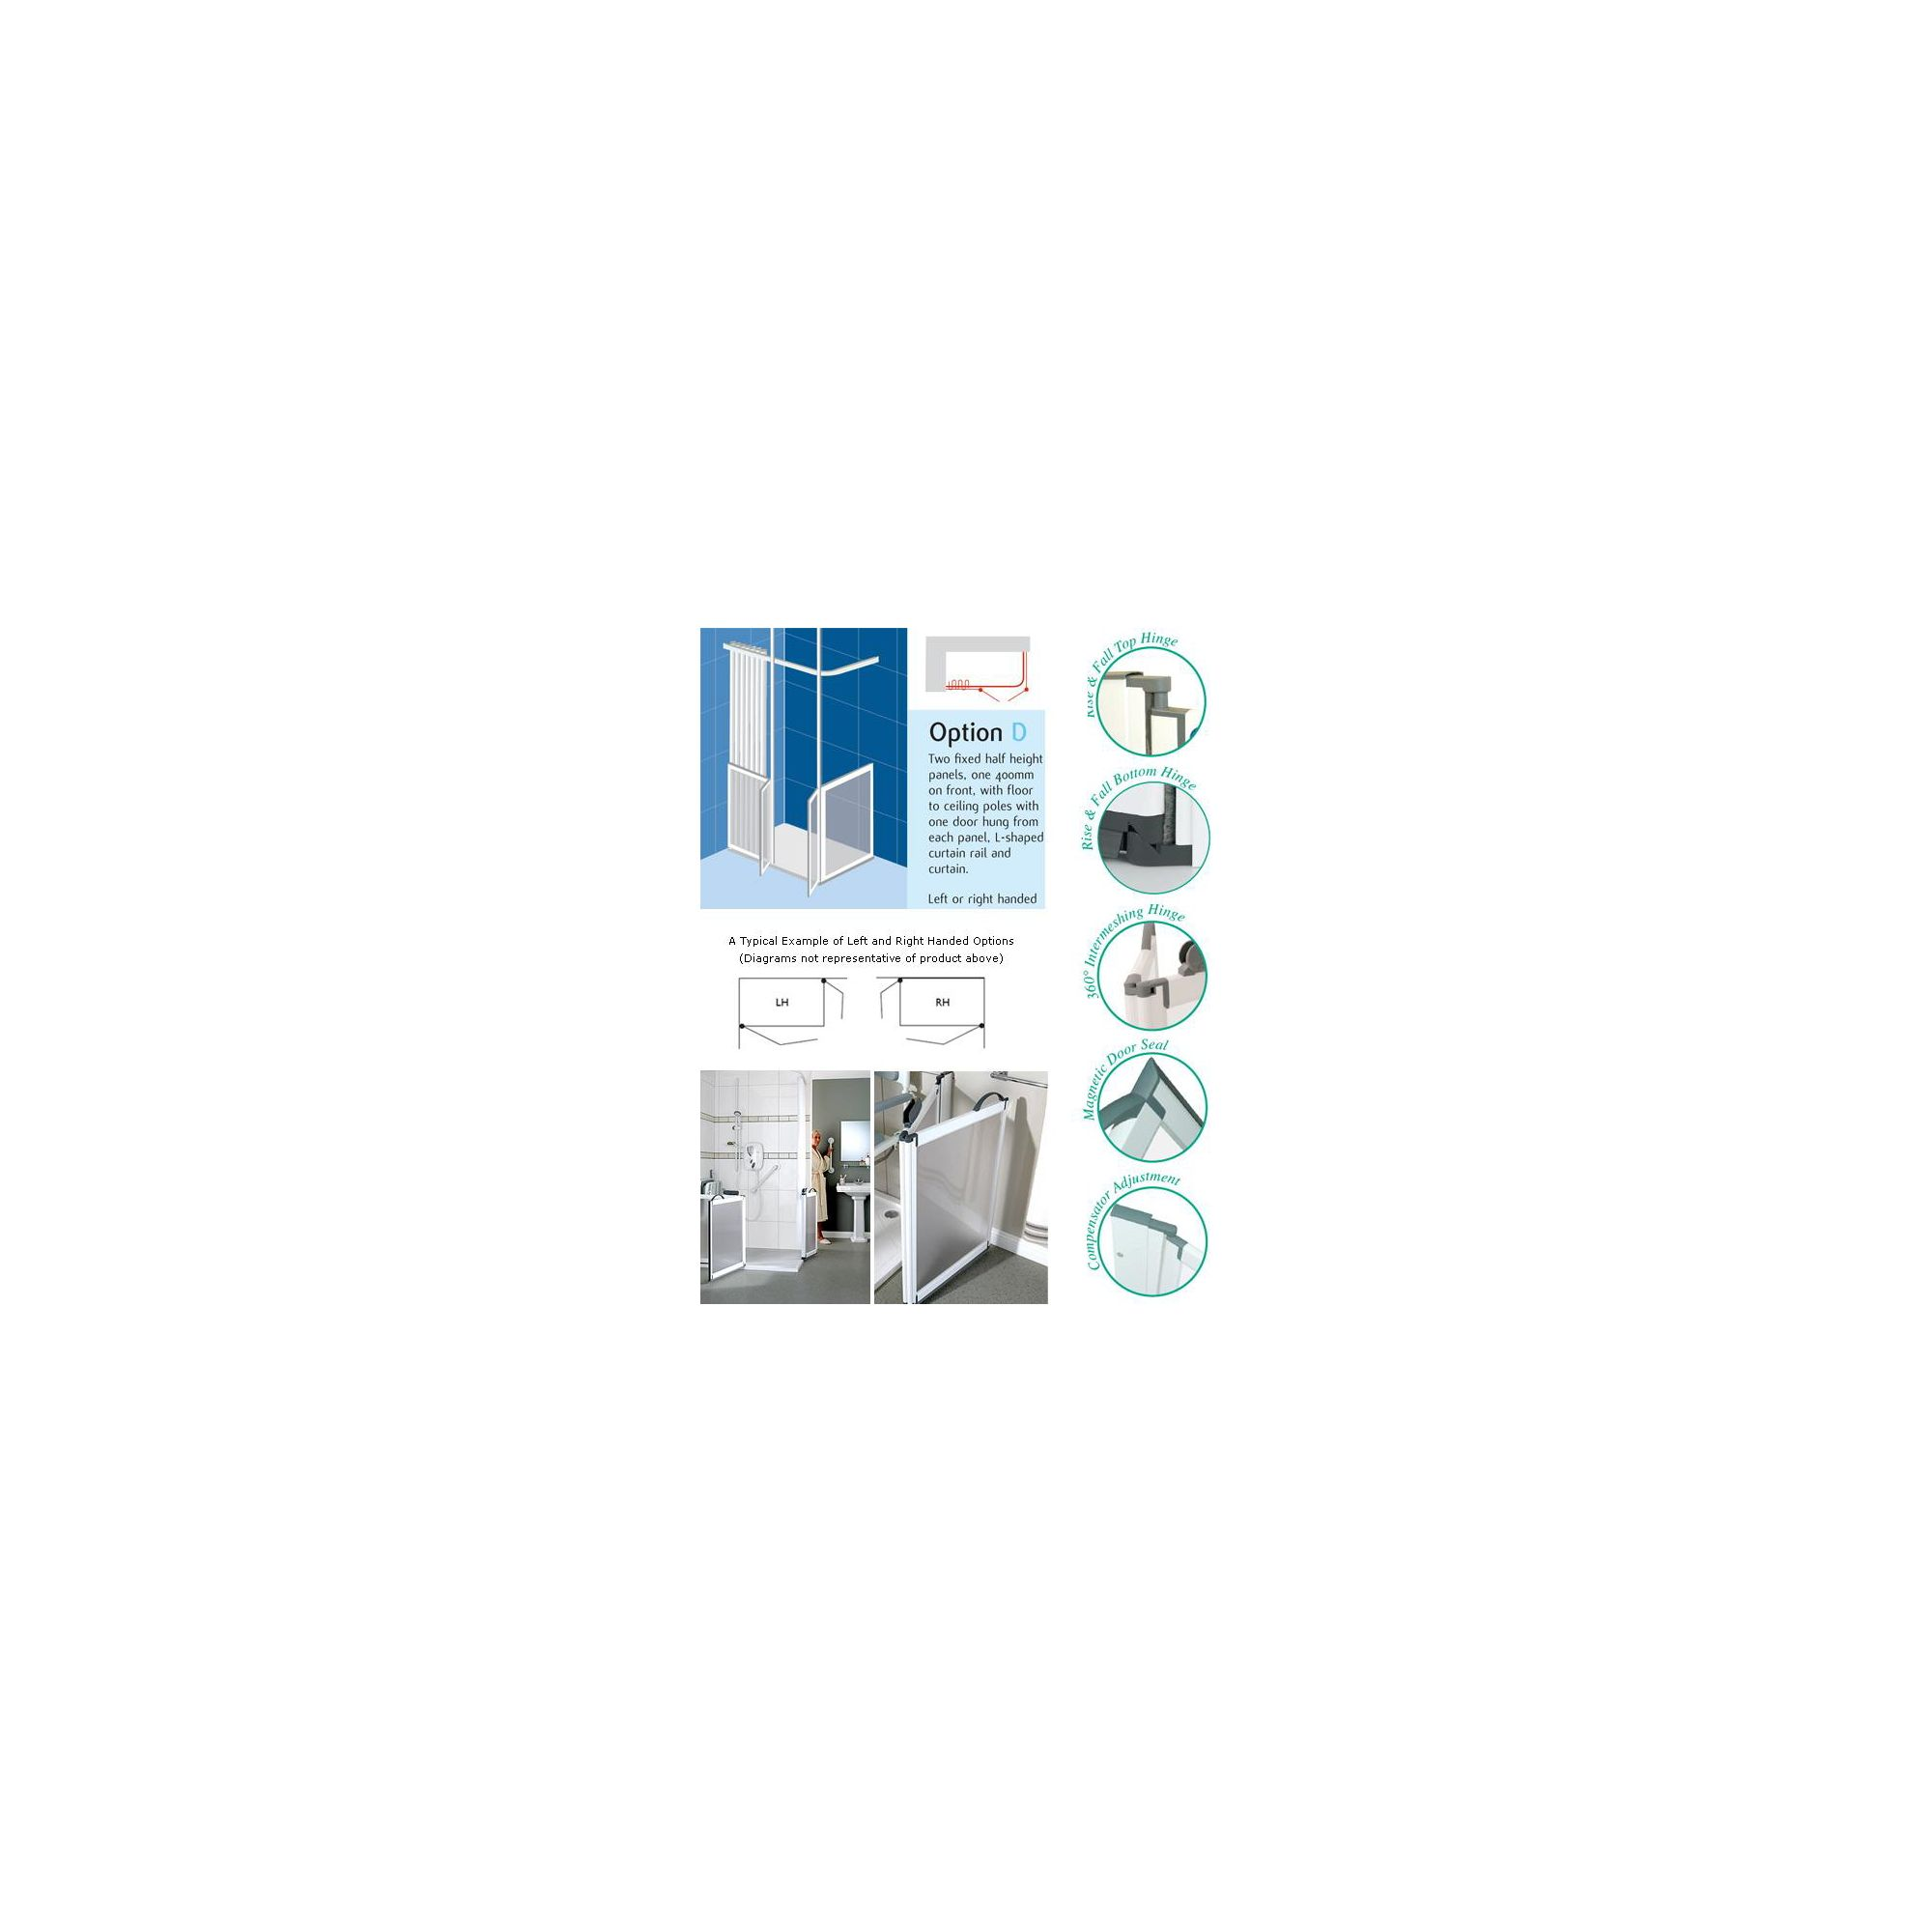 Impey Kentmere Shower Doors OPTION D at Tesco Direct